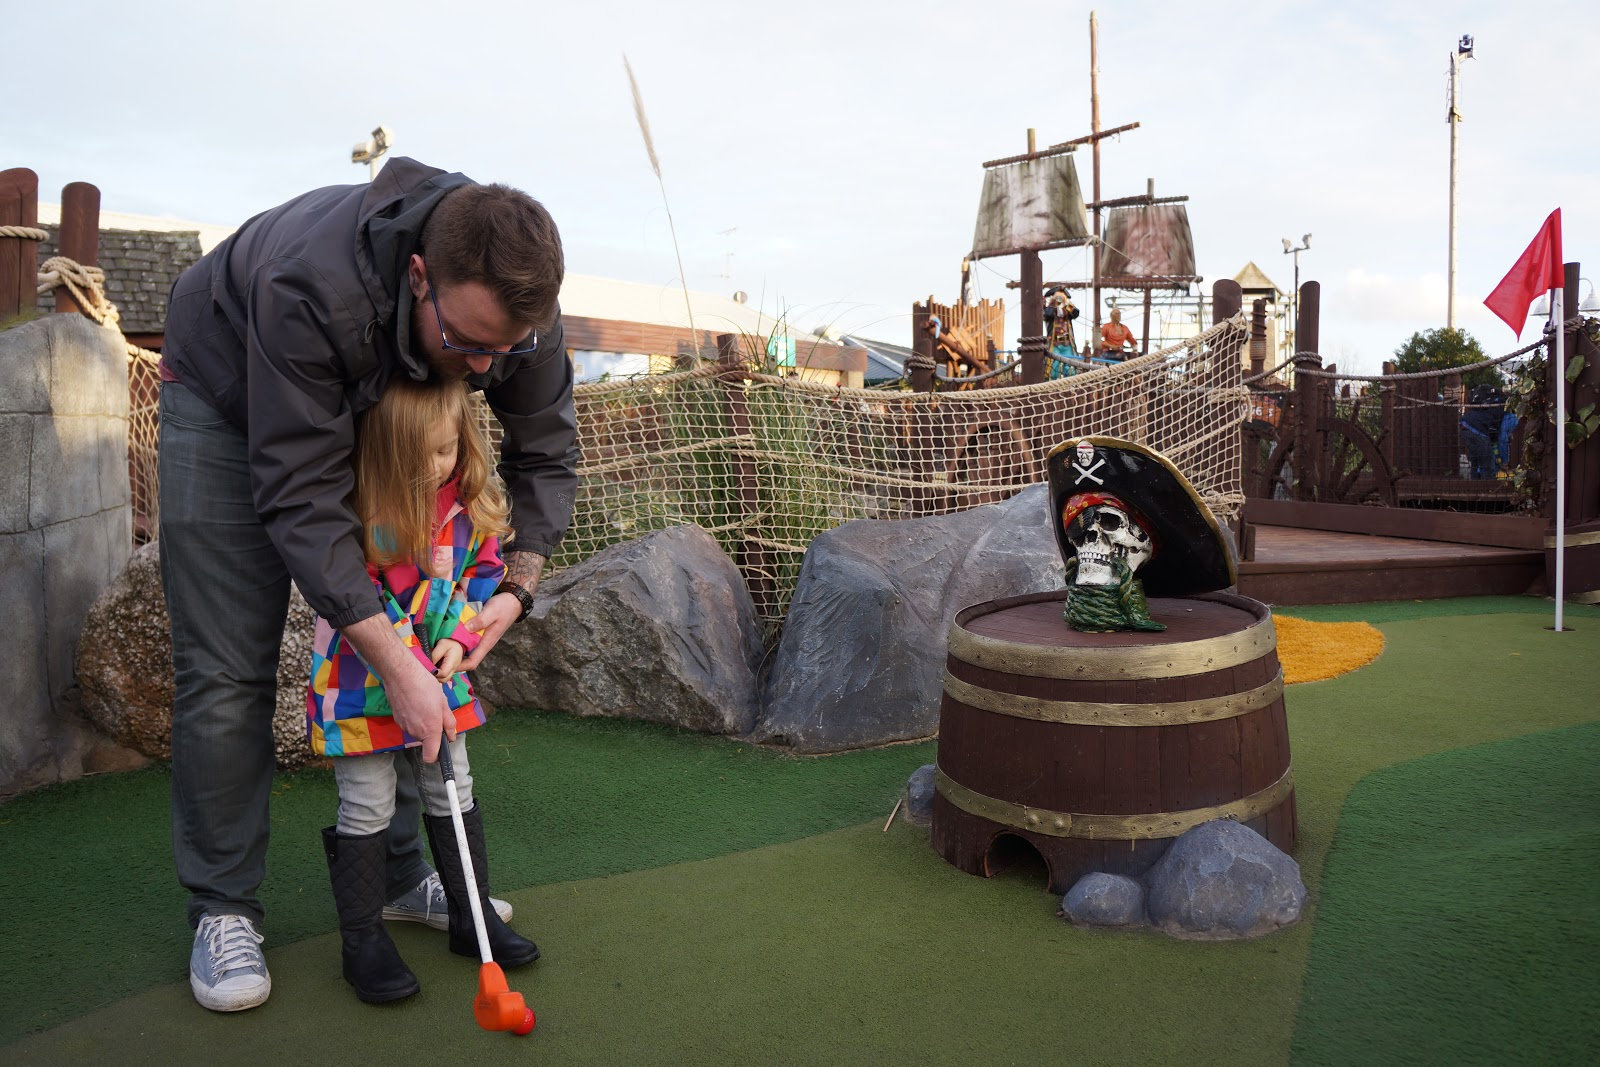 dad and daughter playing minigolf at butlins minehead